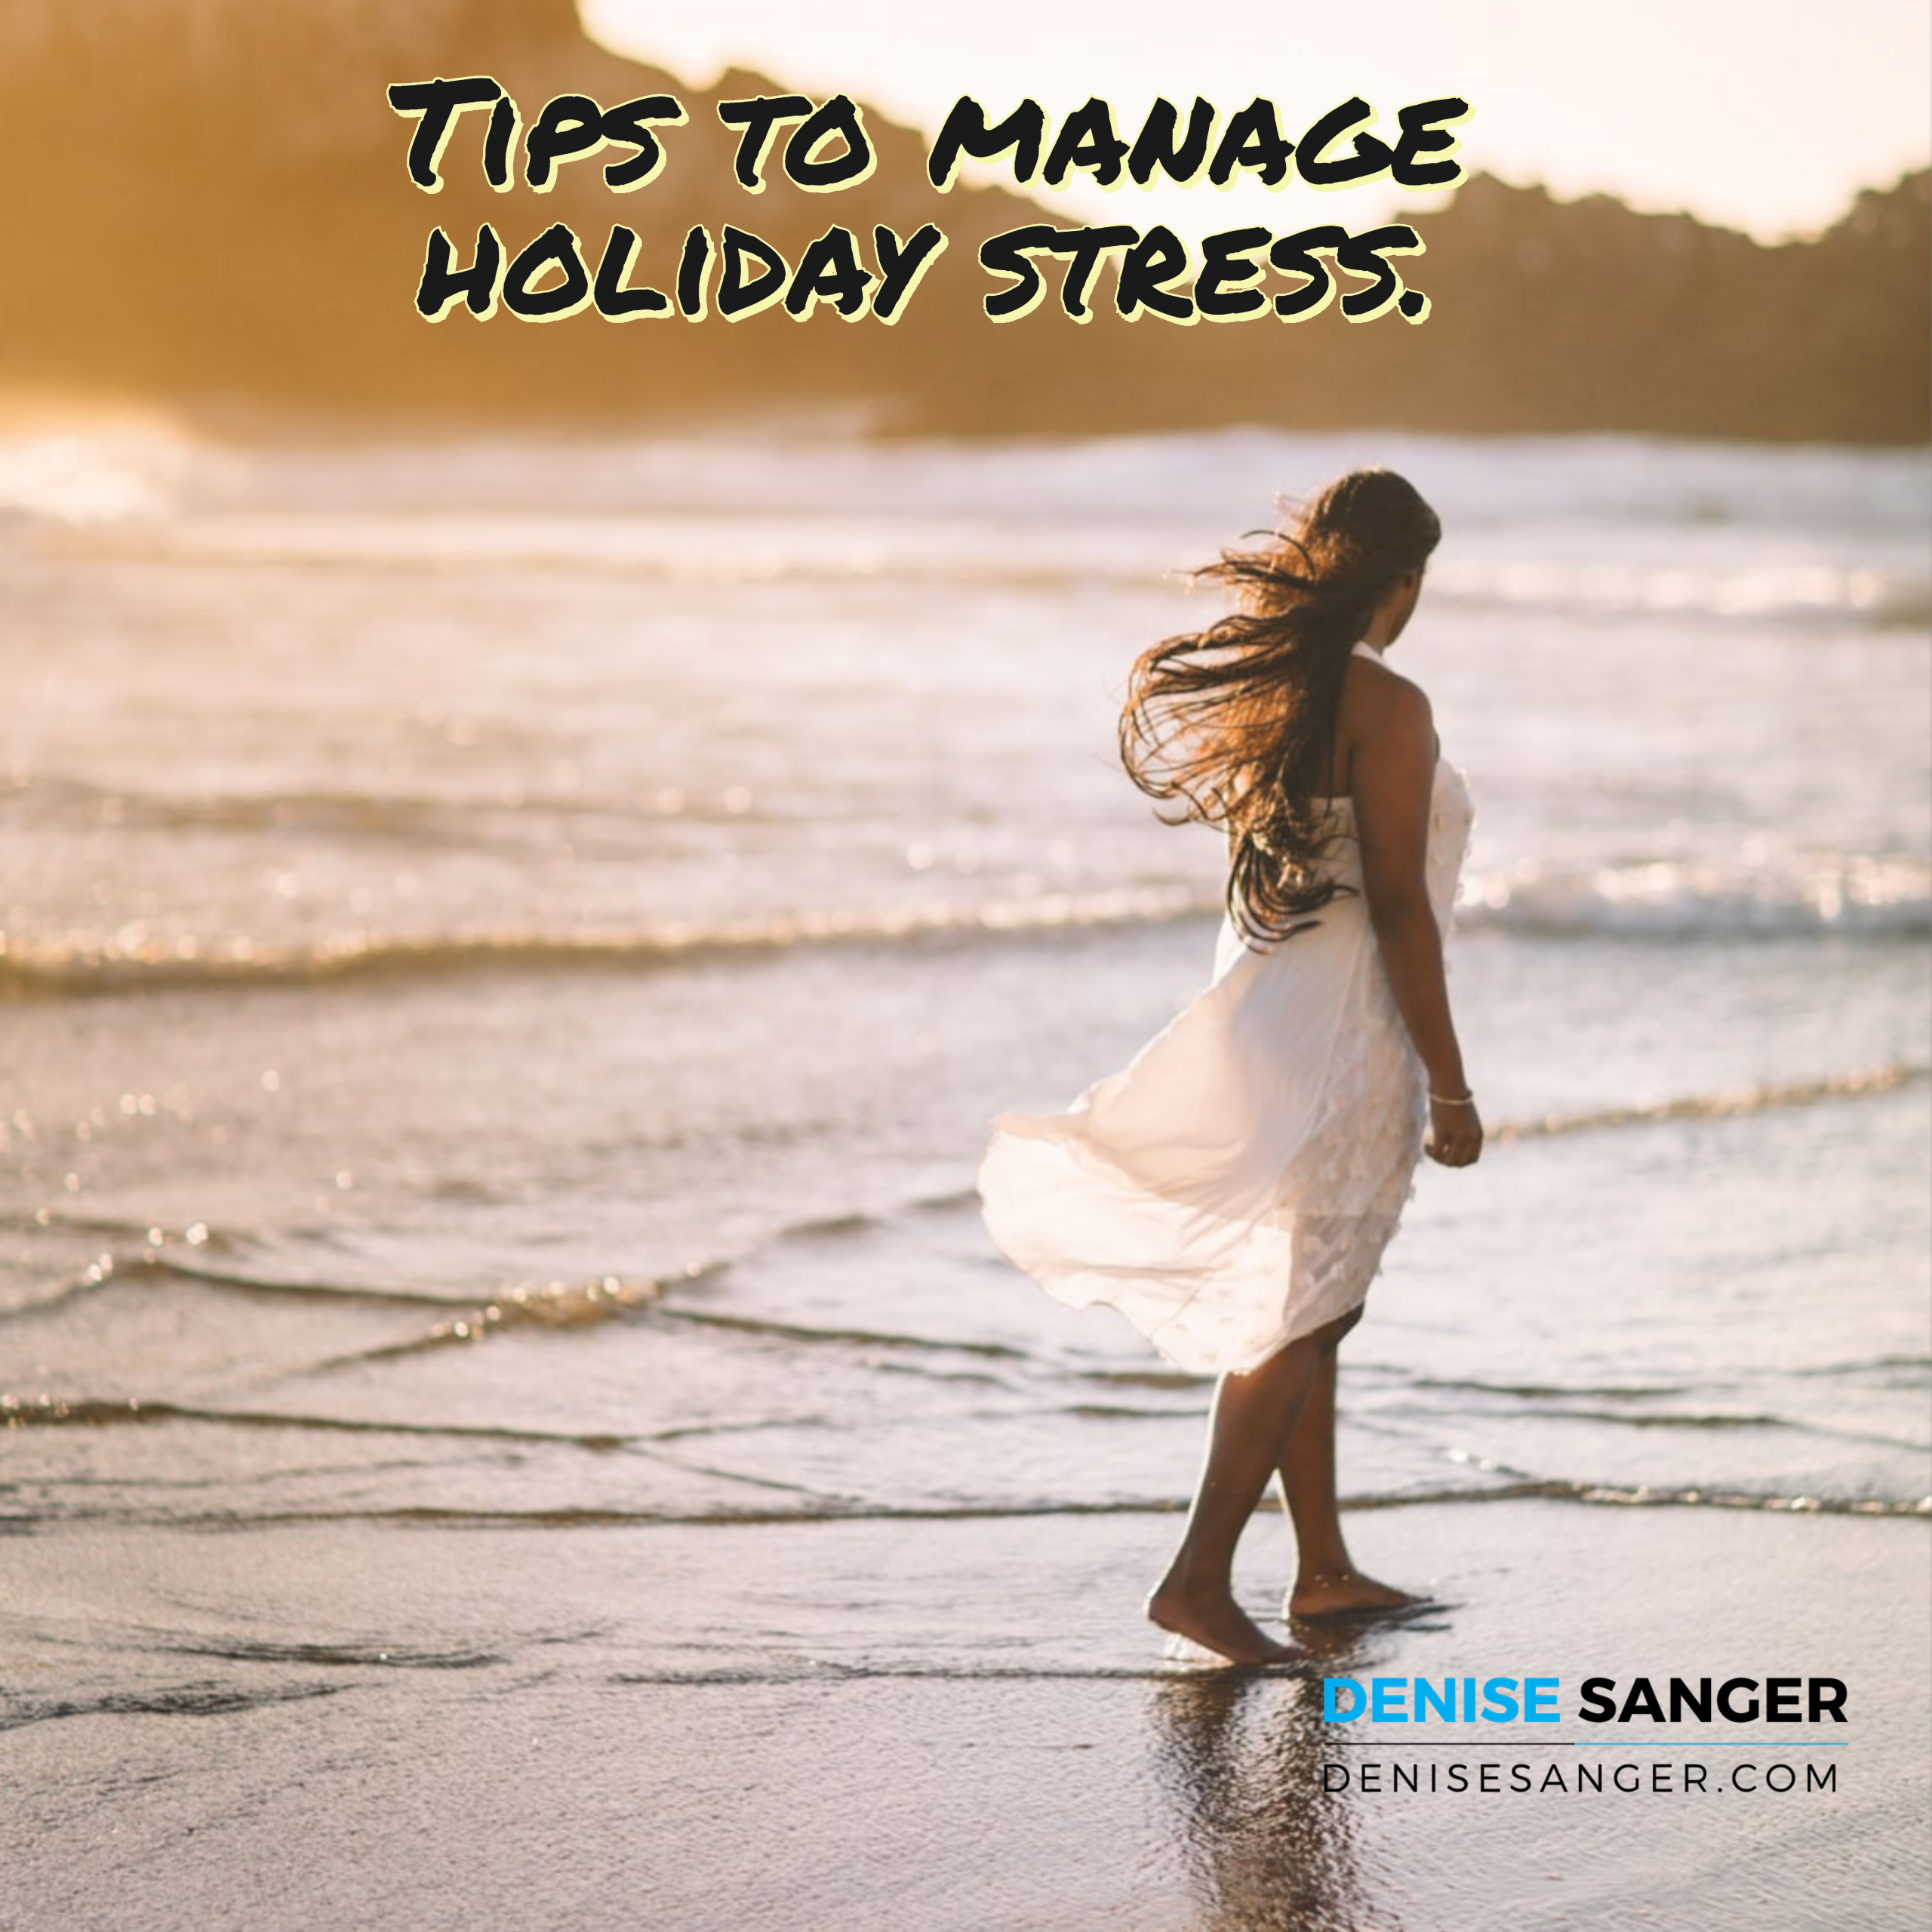 Tips to manage holiday stress